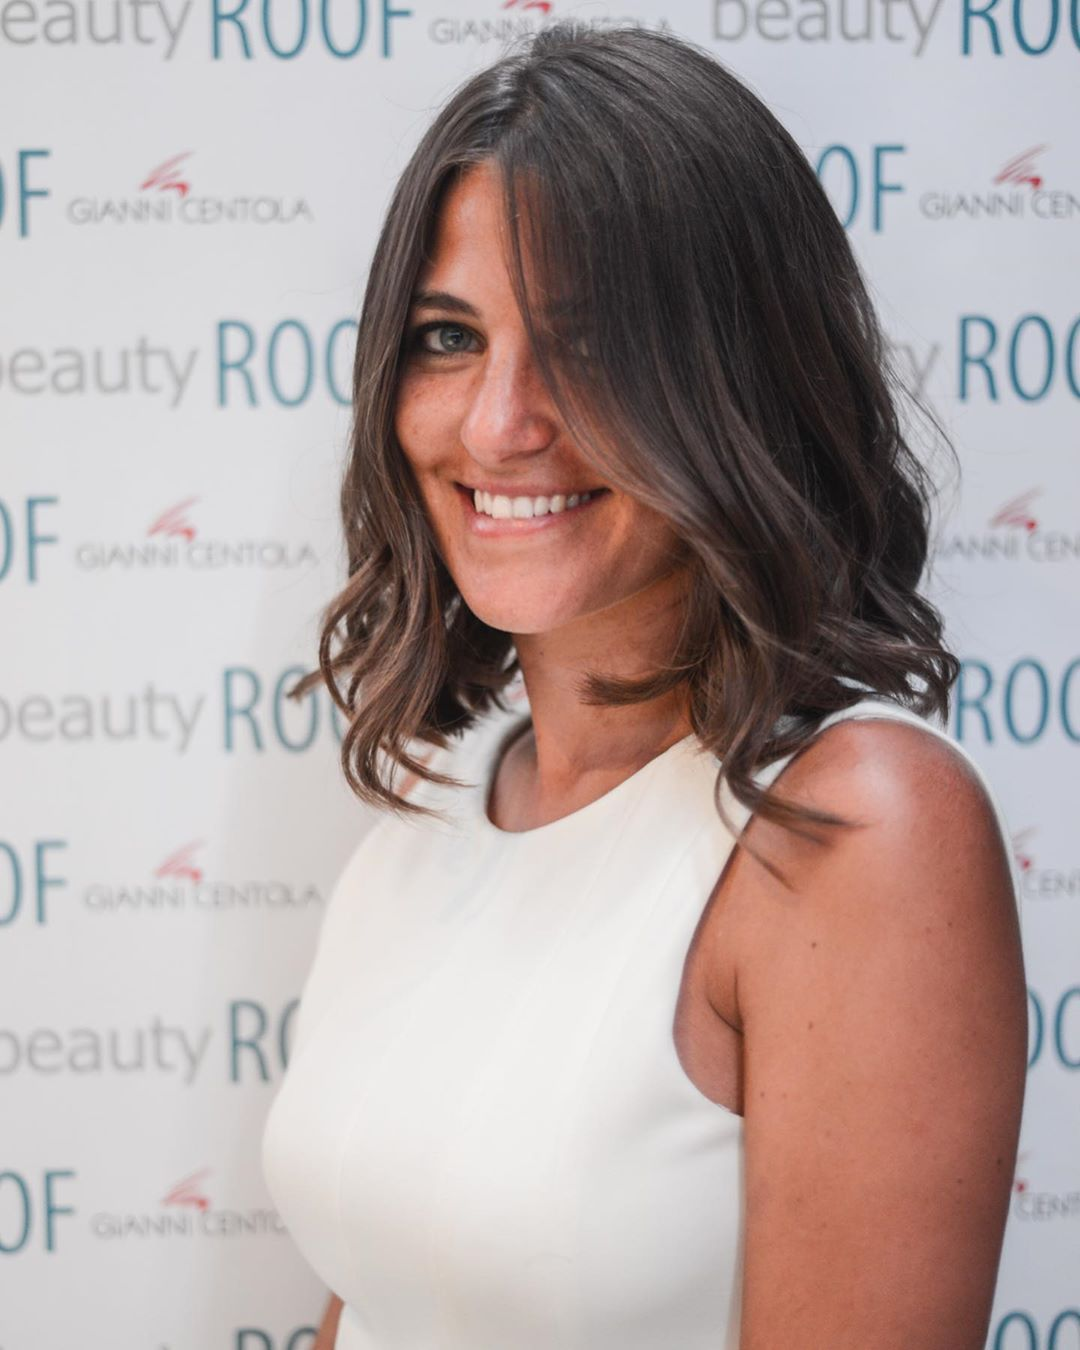 Beautyroof By Gianni Centola Tutti I Giovedi Dalle 17 00 Alle 21 00 Il Nostro Happy Hour A Base Di Relax E Divertimento Are Y Hairstyle Hair Tutorial Beauty